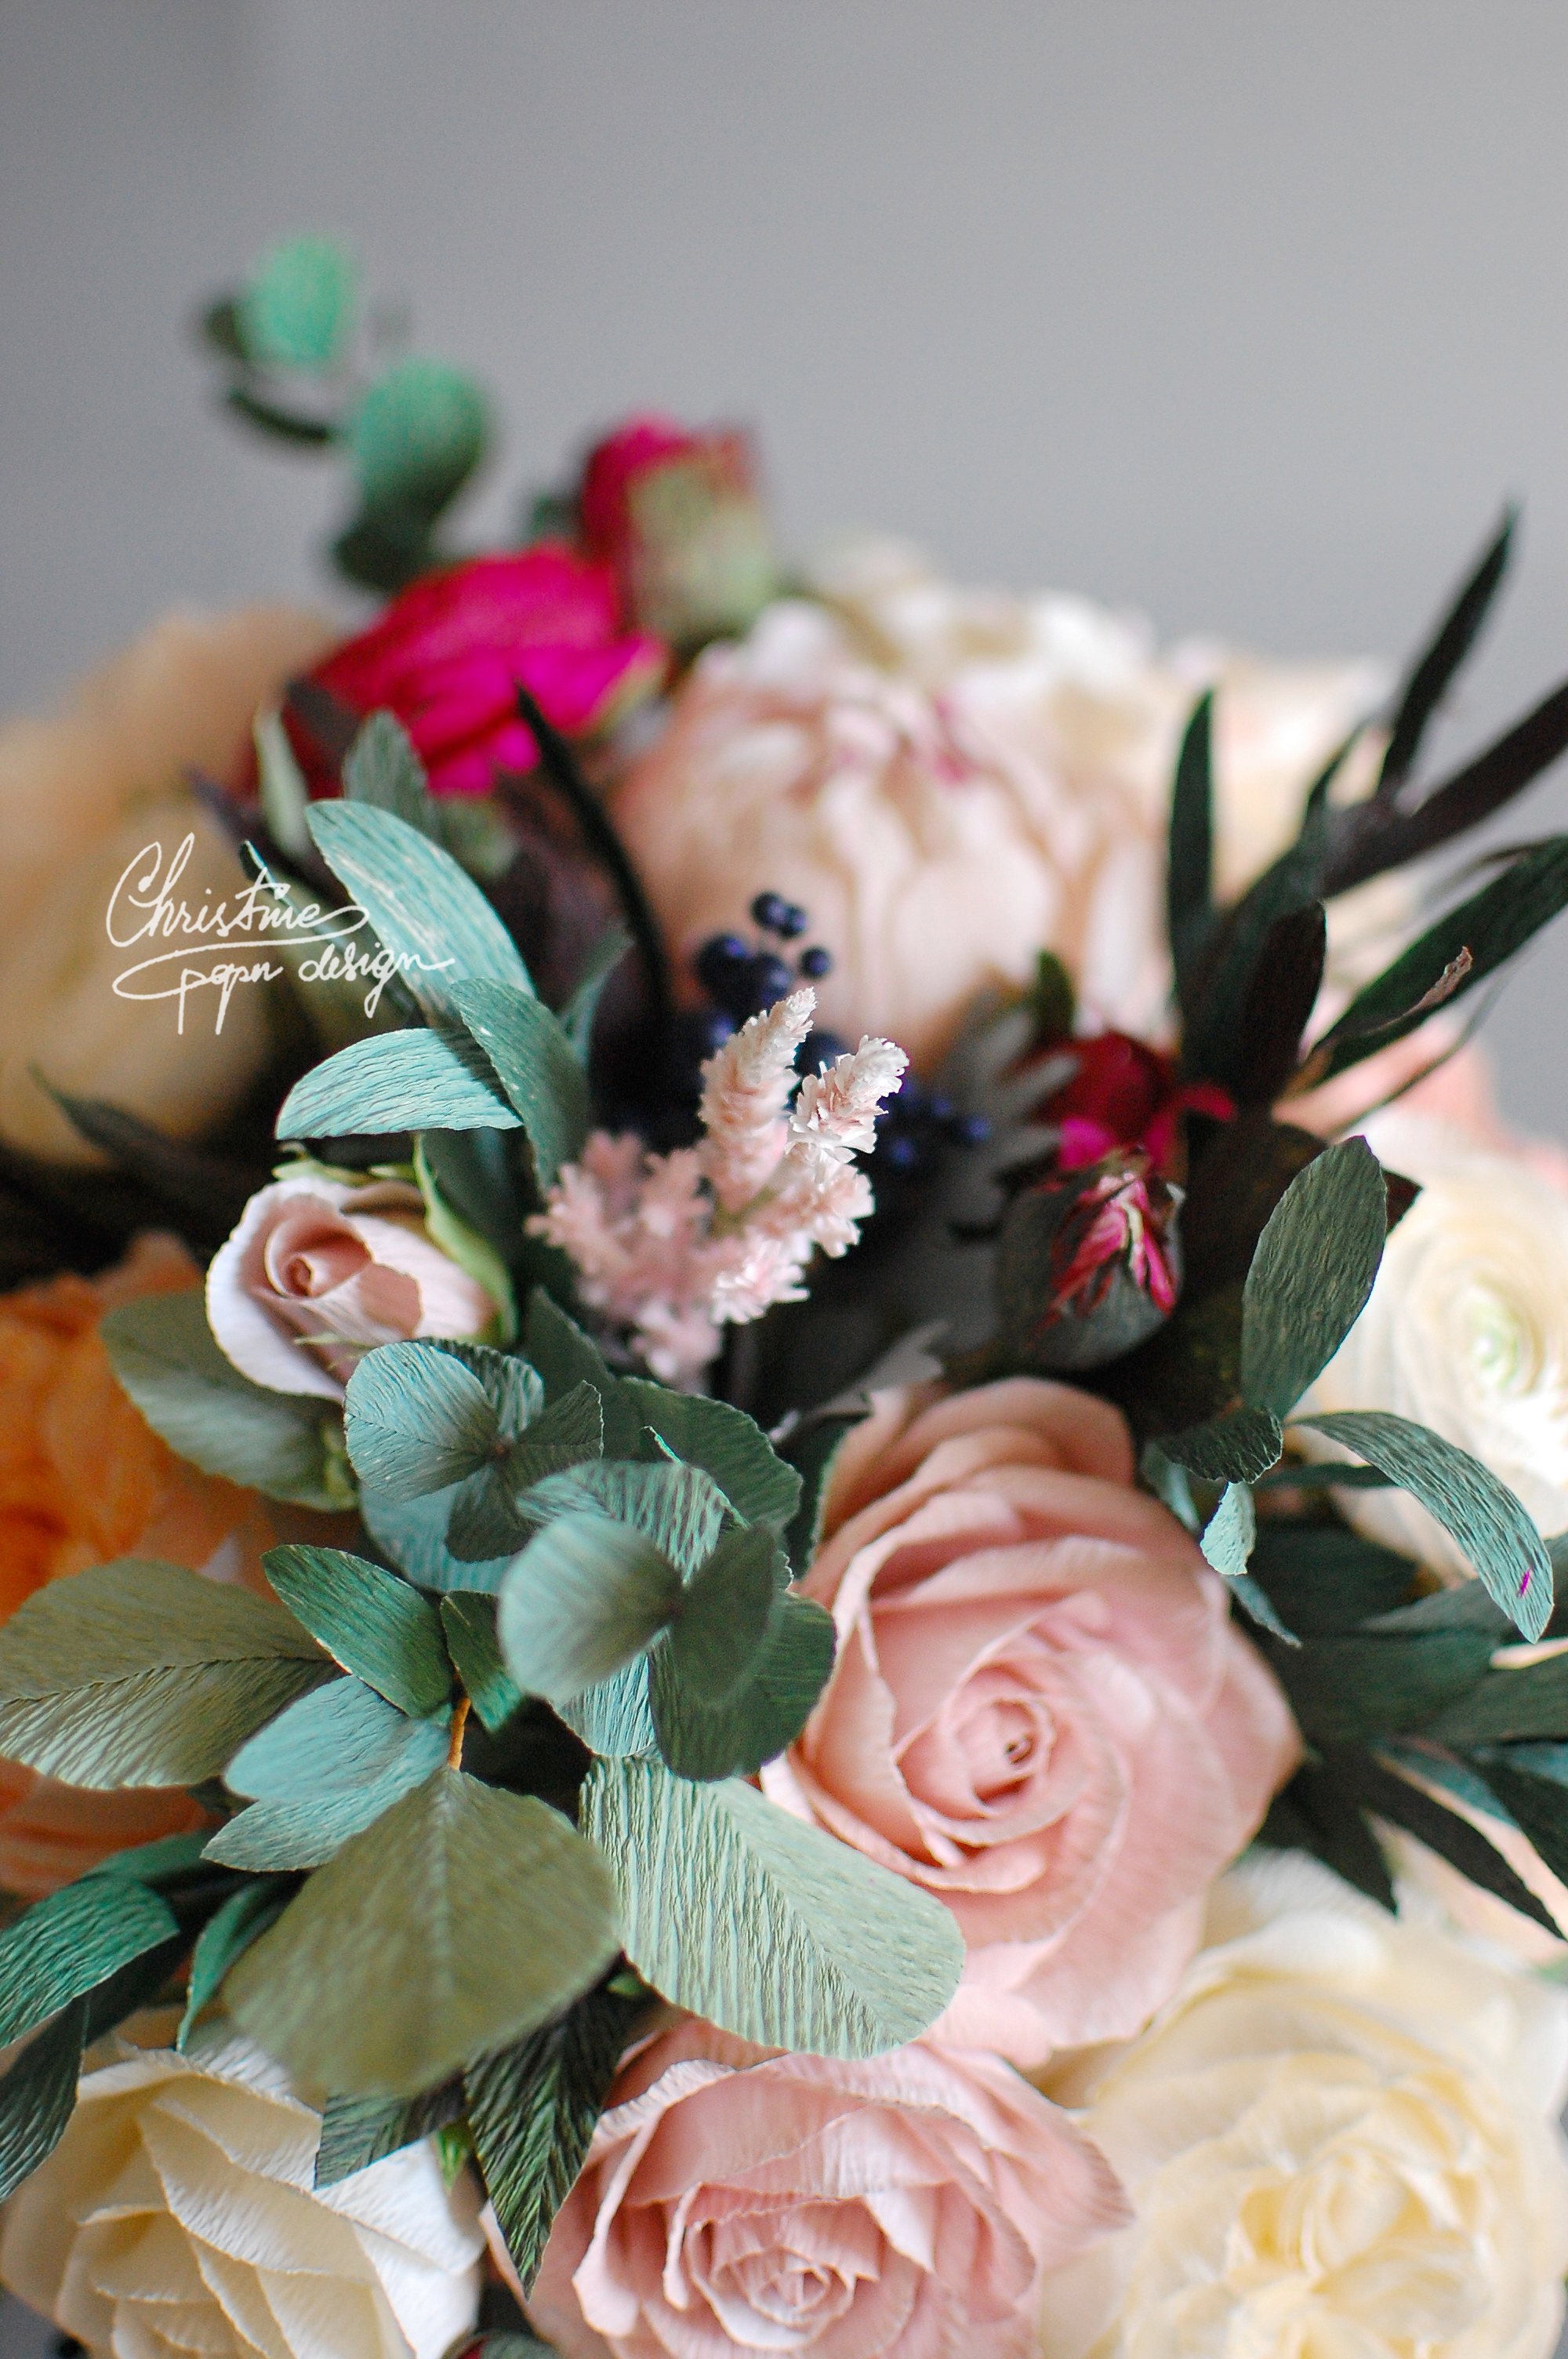 paperflowers bridal bouquet - Christinepaperdesign (1)